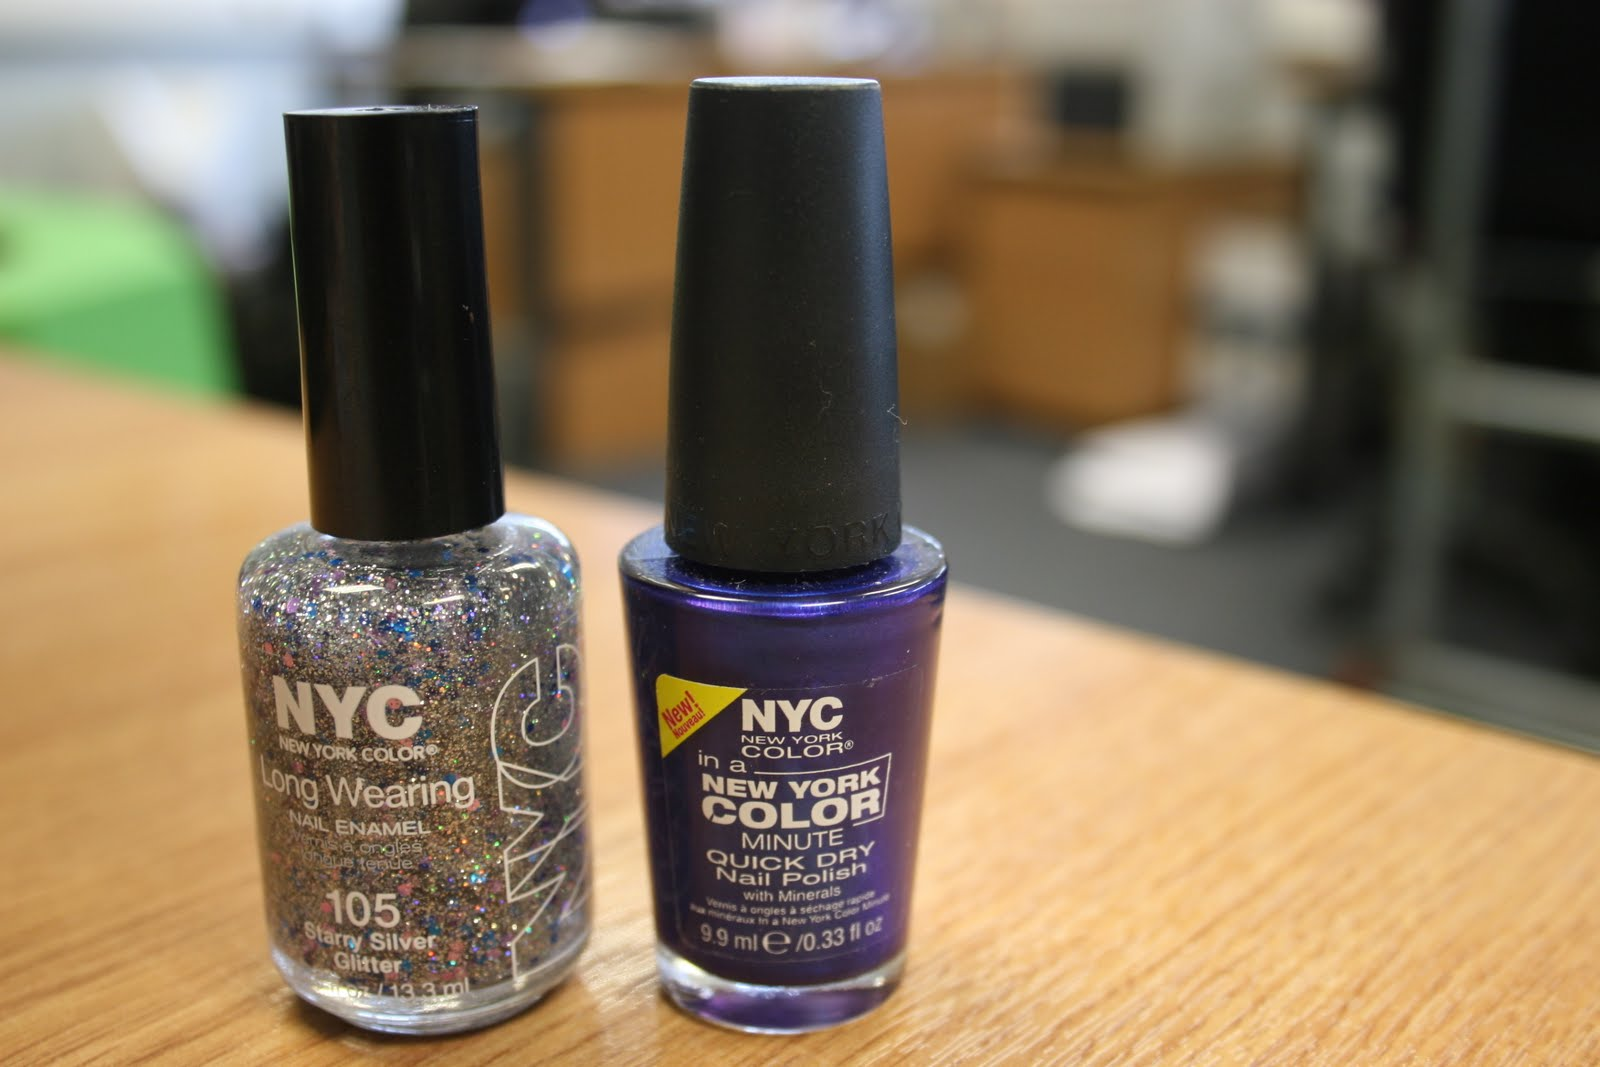 Win! One of 5 sets of NYC nail polish in Starry Silver Glitter and ...